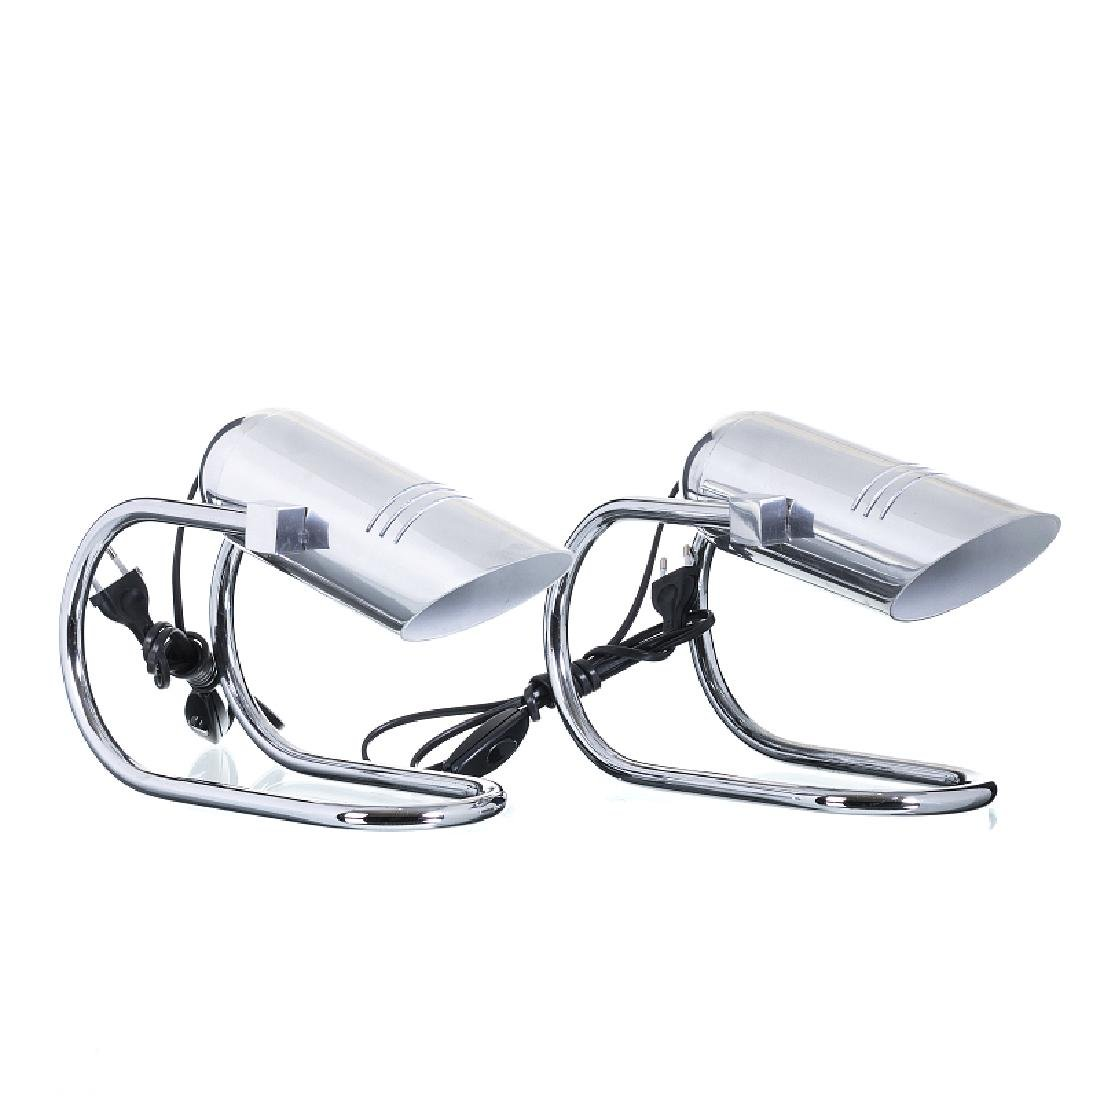 Pair of chromed modernist desk lamps